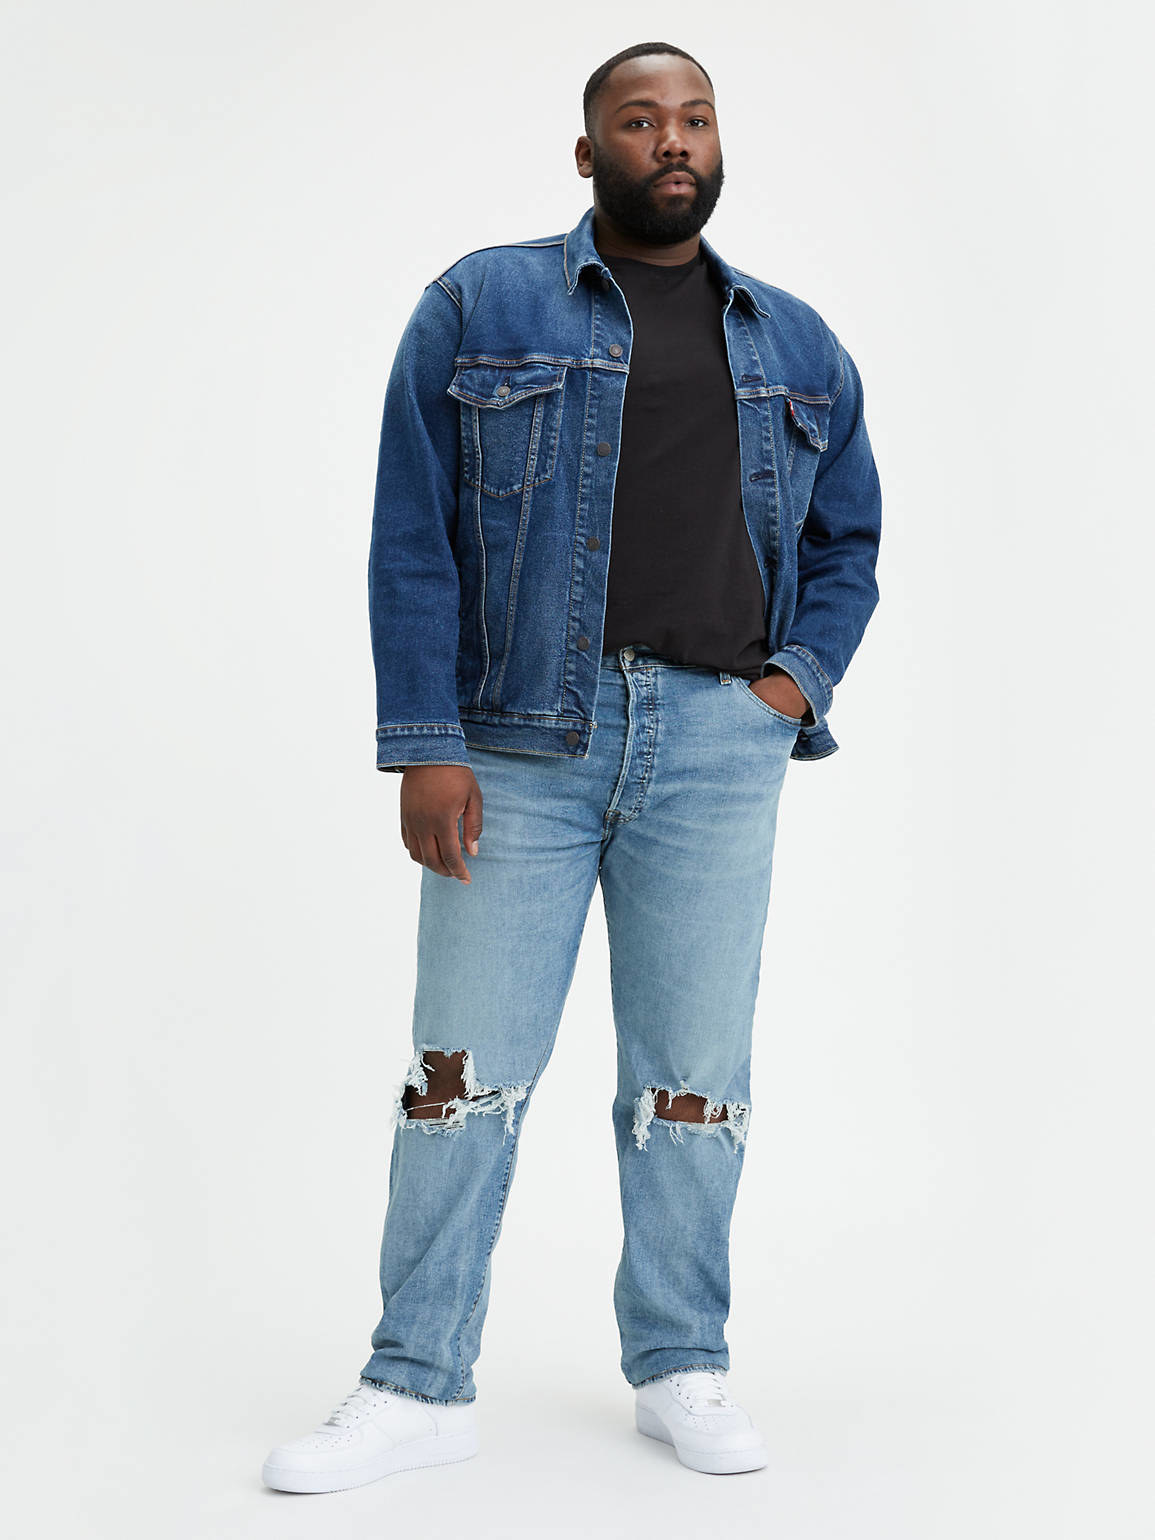 a model wearing the jeans which have a rip in the knee